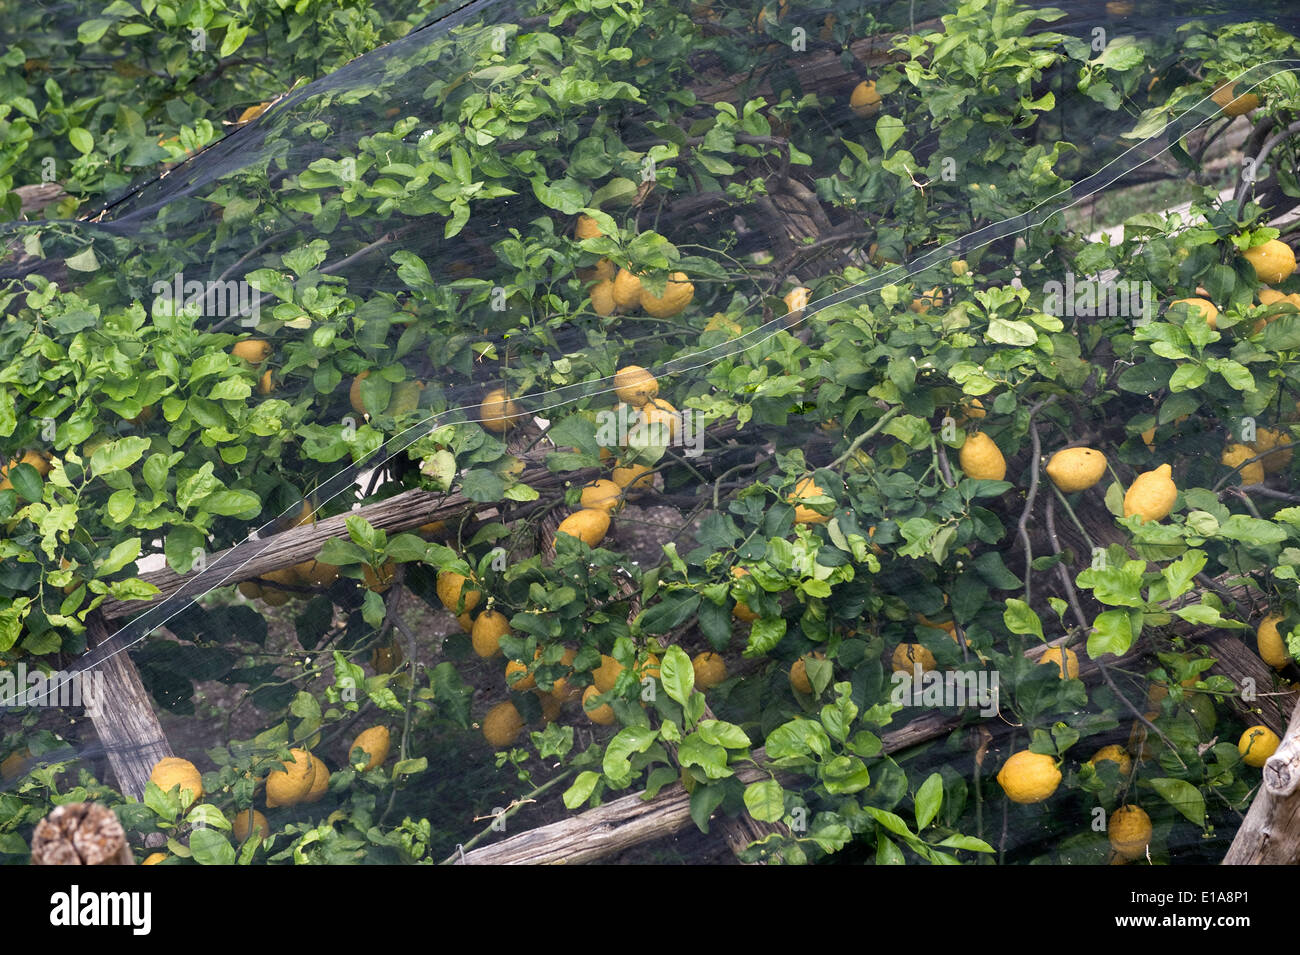 Lemon trees with fruit under shade netting to prevent sunburn on the Bay of Salerno near Amalfi in Italy. - Stock Image